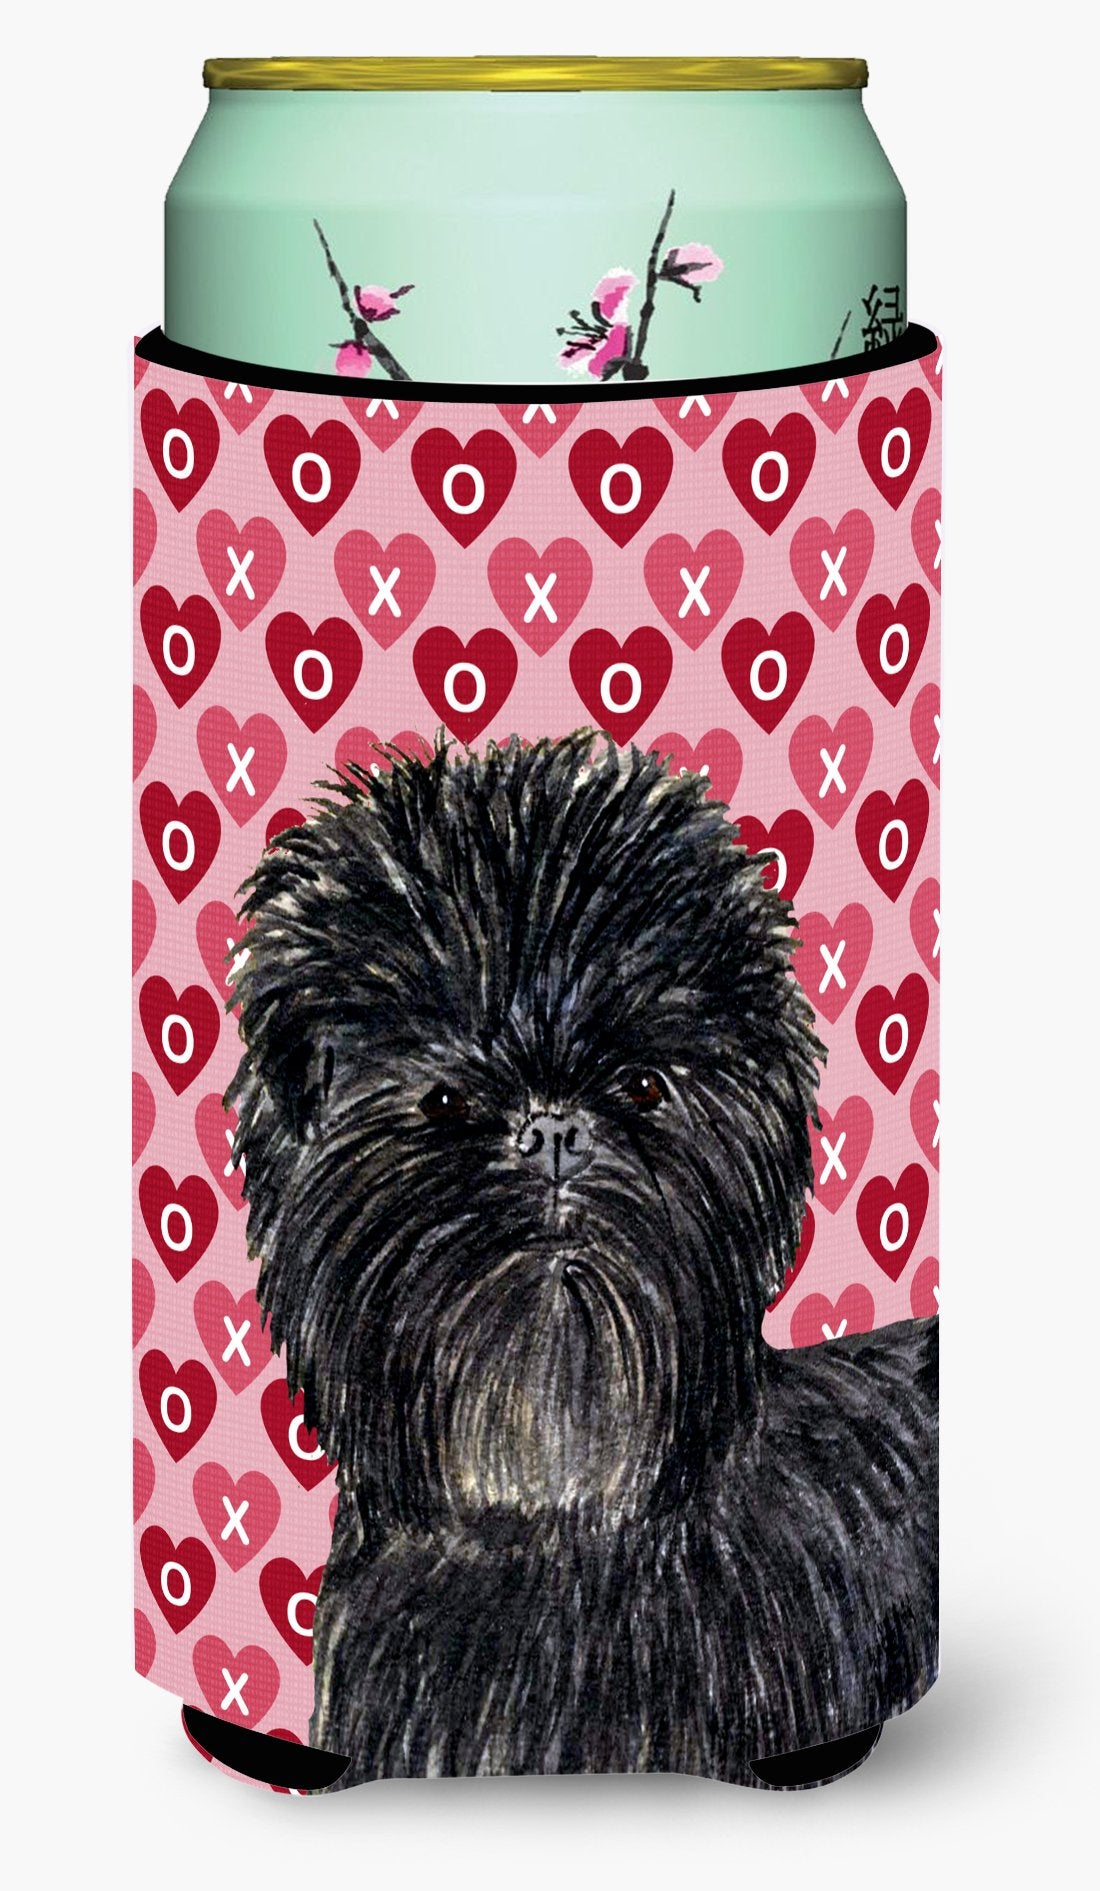 Affenpinscher Hearts Love and Valentine's Day Portrait Tall Boy Beverage Insulator Beverage Insulator Hugger by Caroline's Treasures